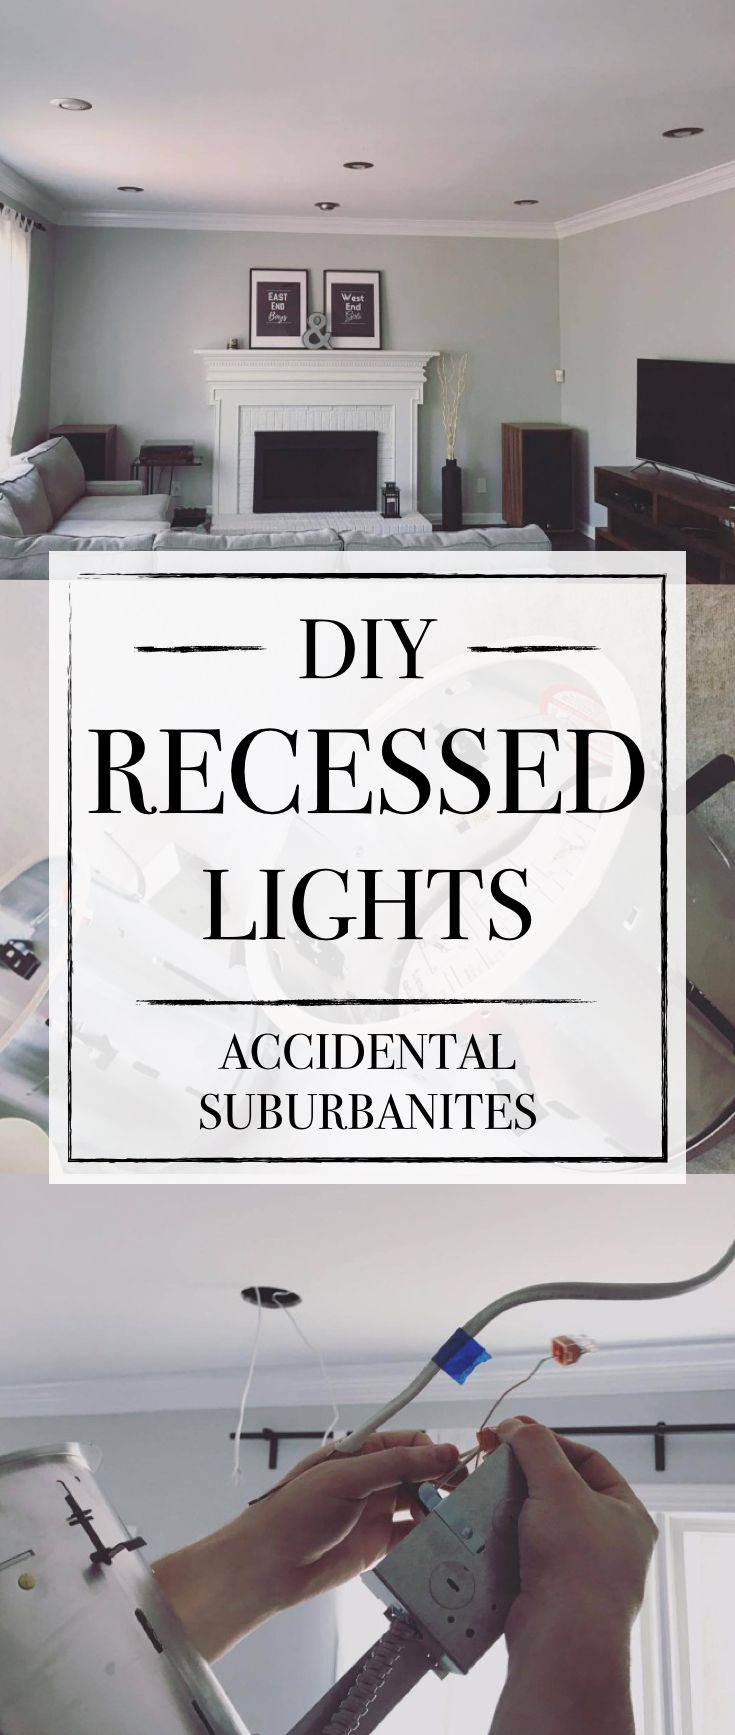 DIY Recessed Lighting   how to install recessed lights with no attic     DIY Recessed Lighting   how to install recessed lights with no attic  access  convert existing